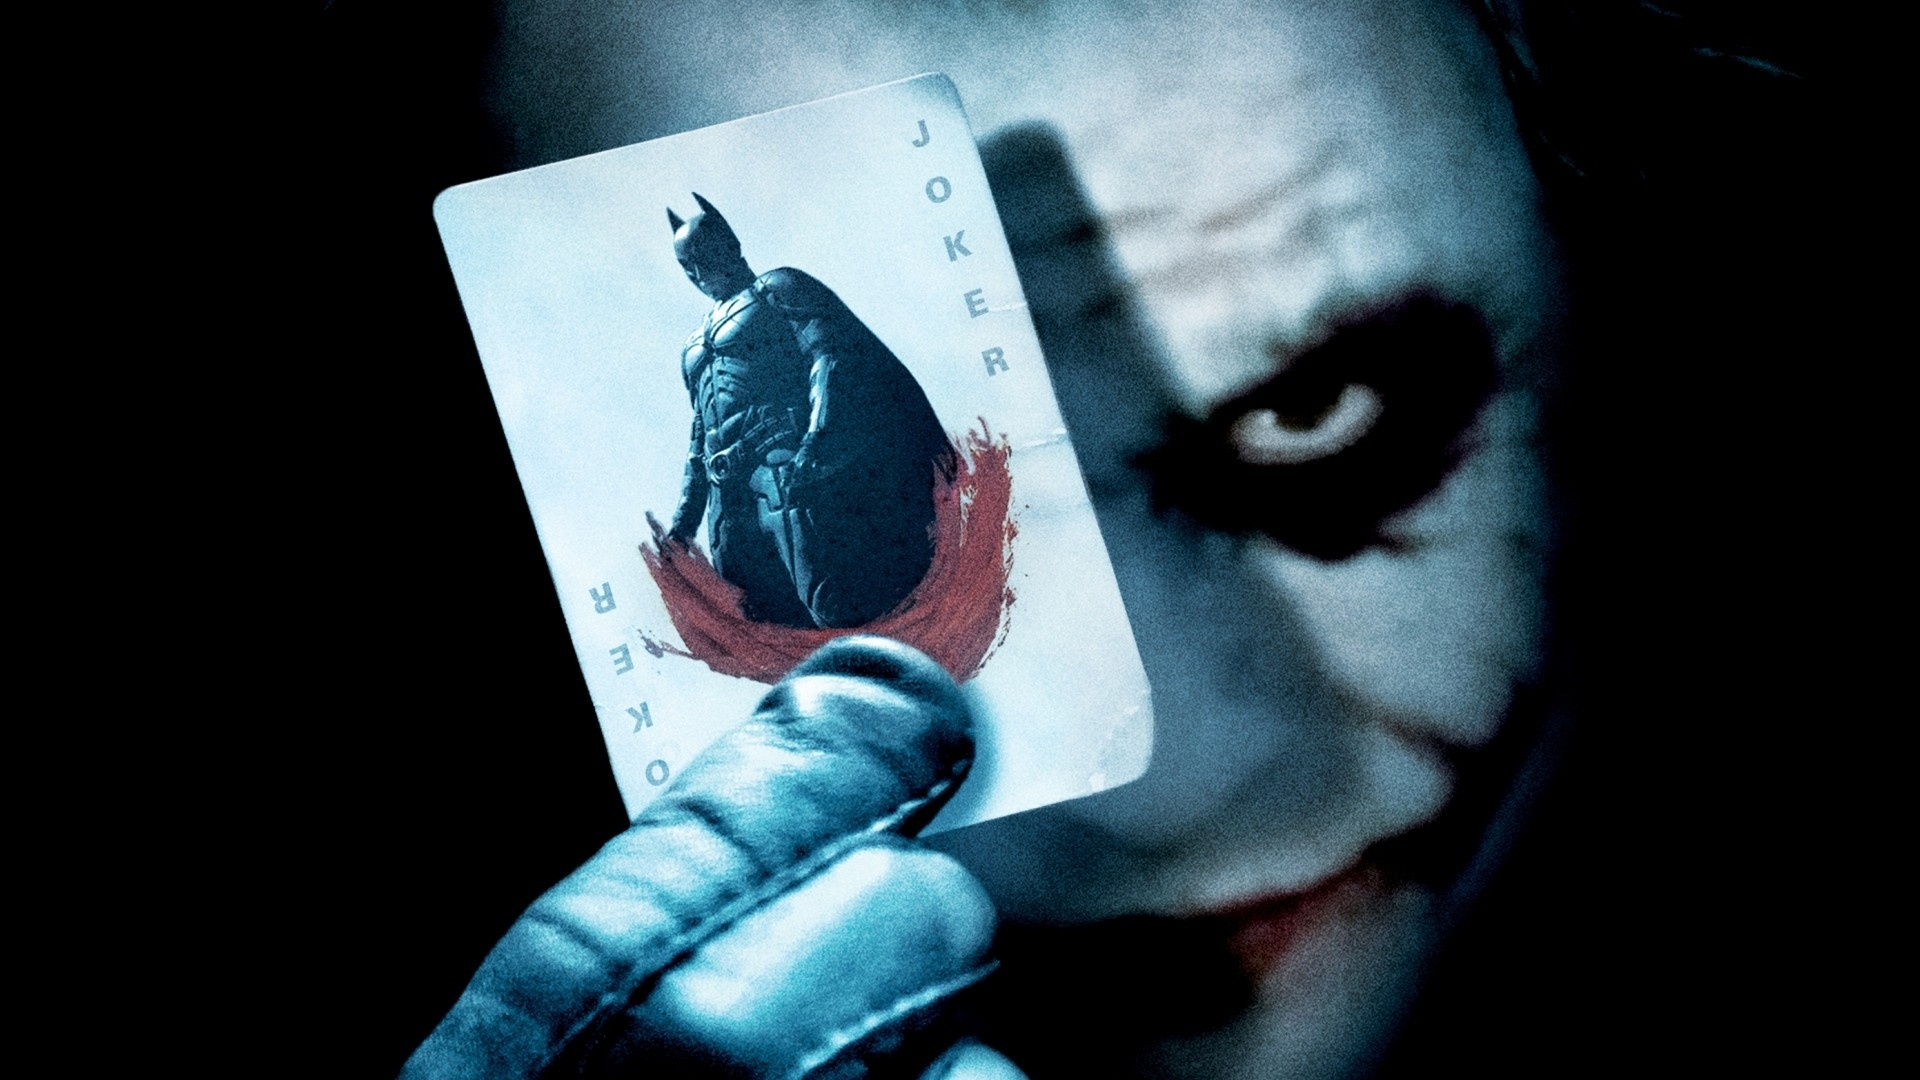 Joker Cool Image